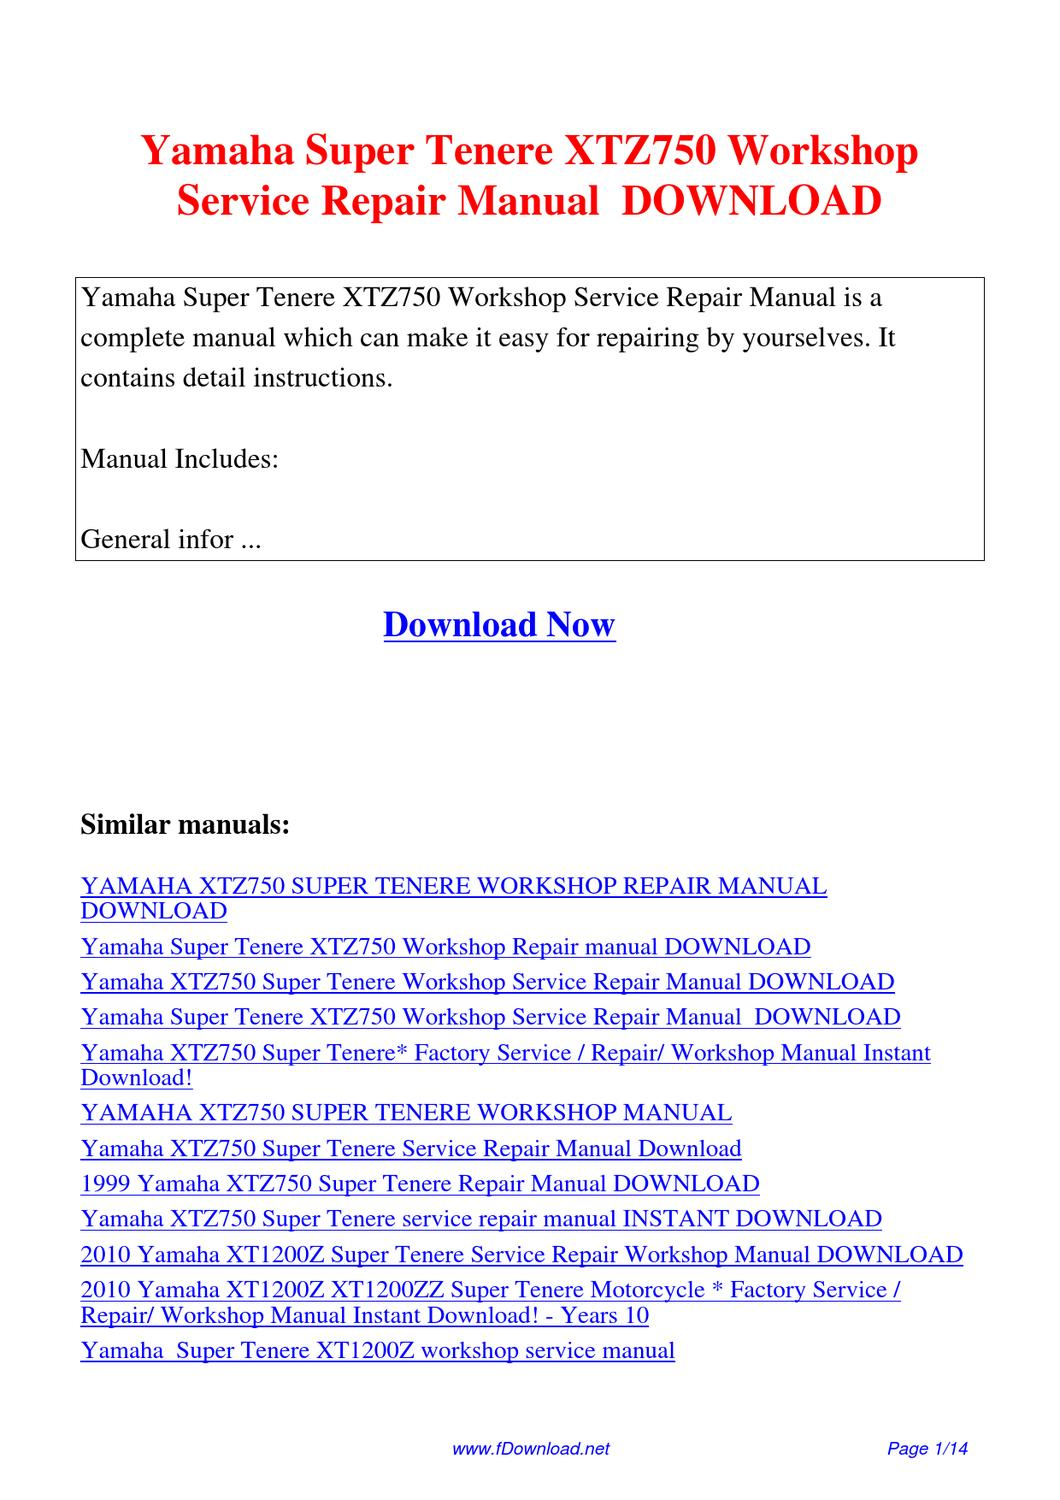 Yamaha Super Tenere Xtz750 Workshop Service Repair Manual By Gipusi Samu